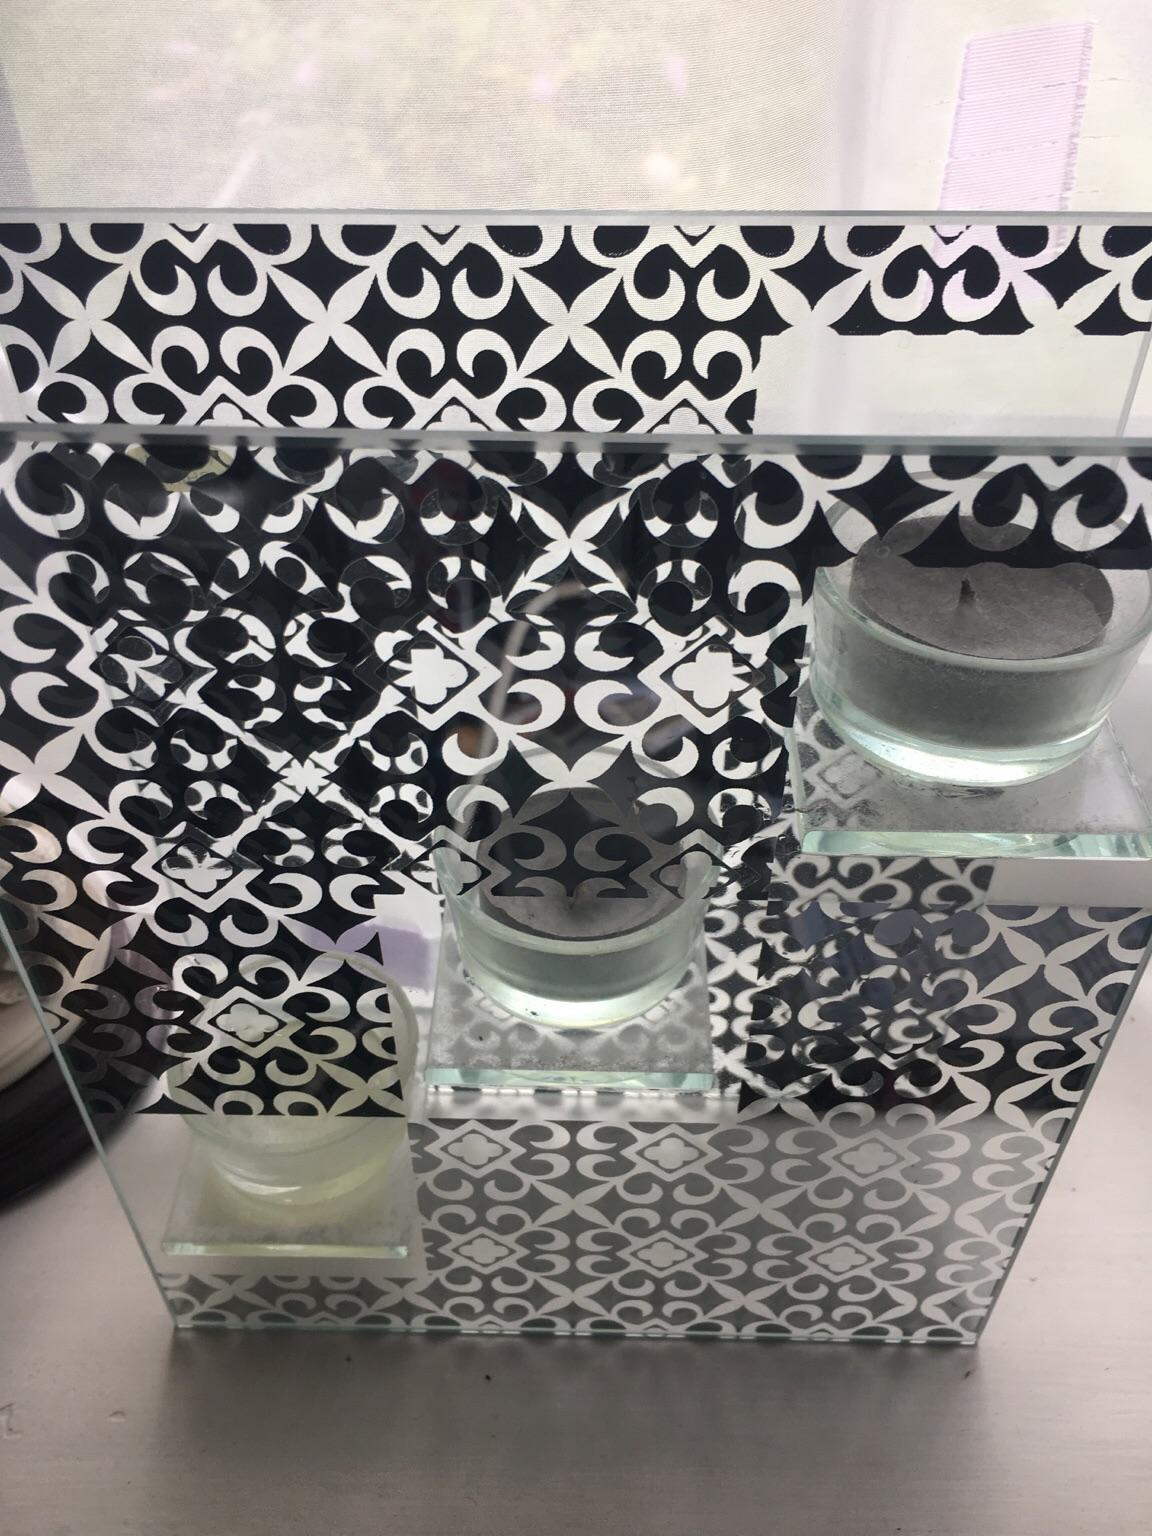 Glass Candle Holder In Kt2 Thames For 5 00 For Sale Shpock